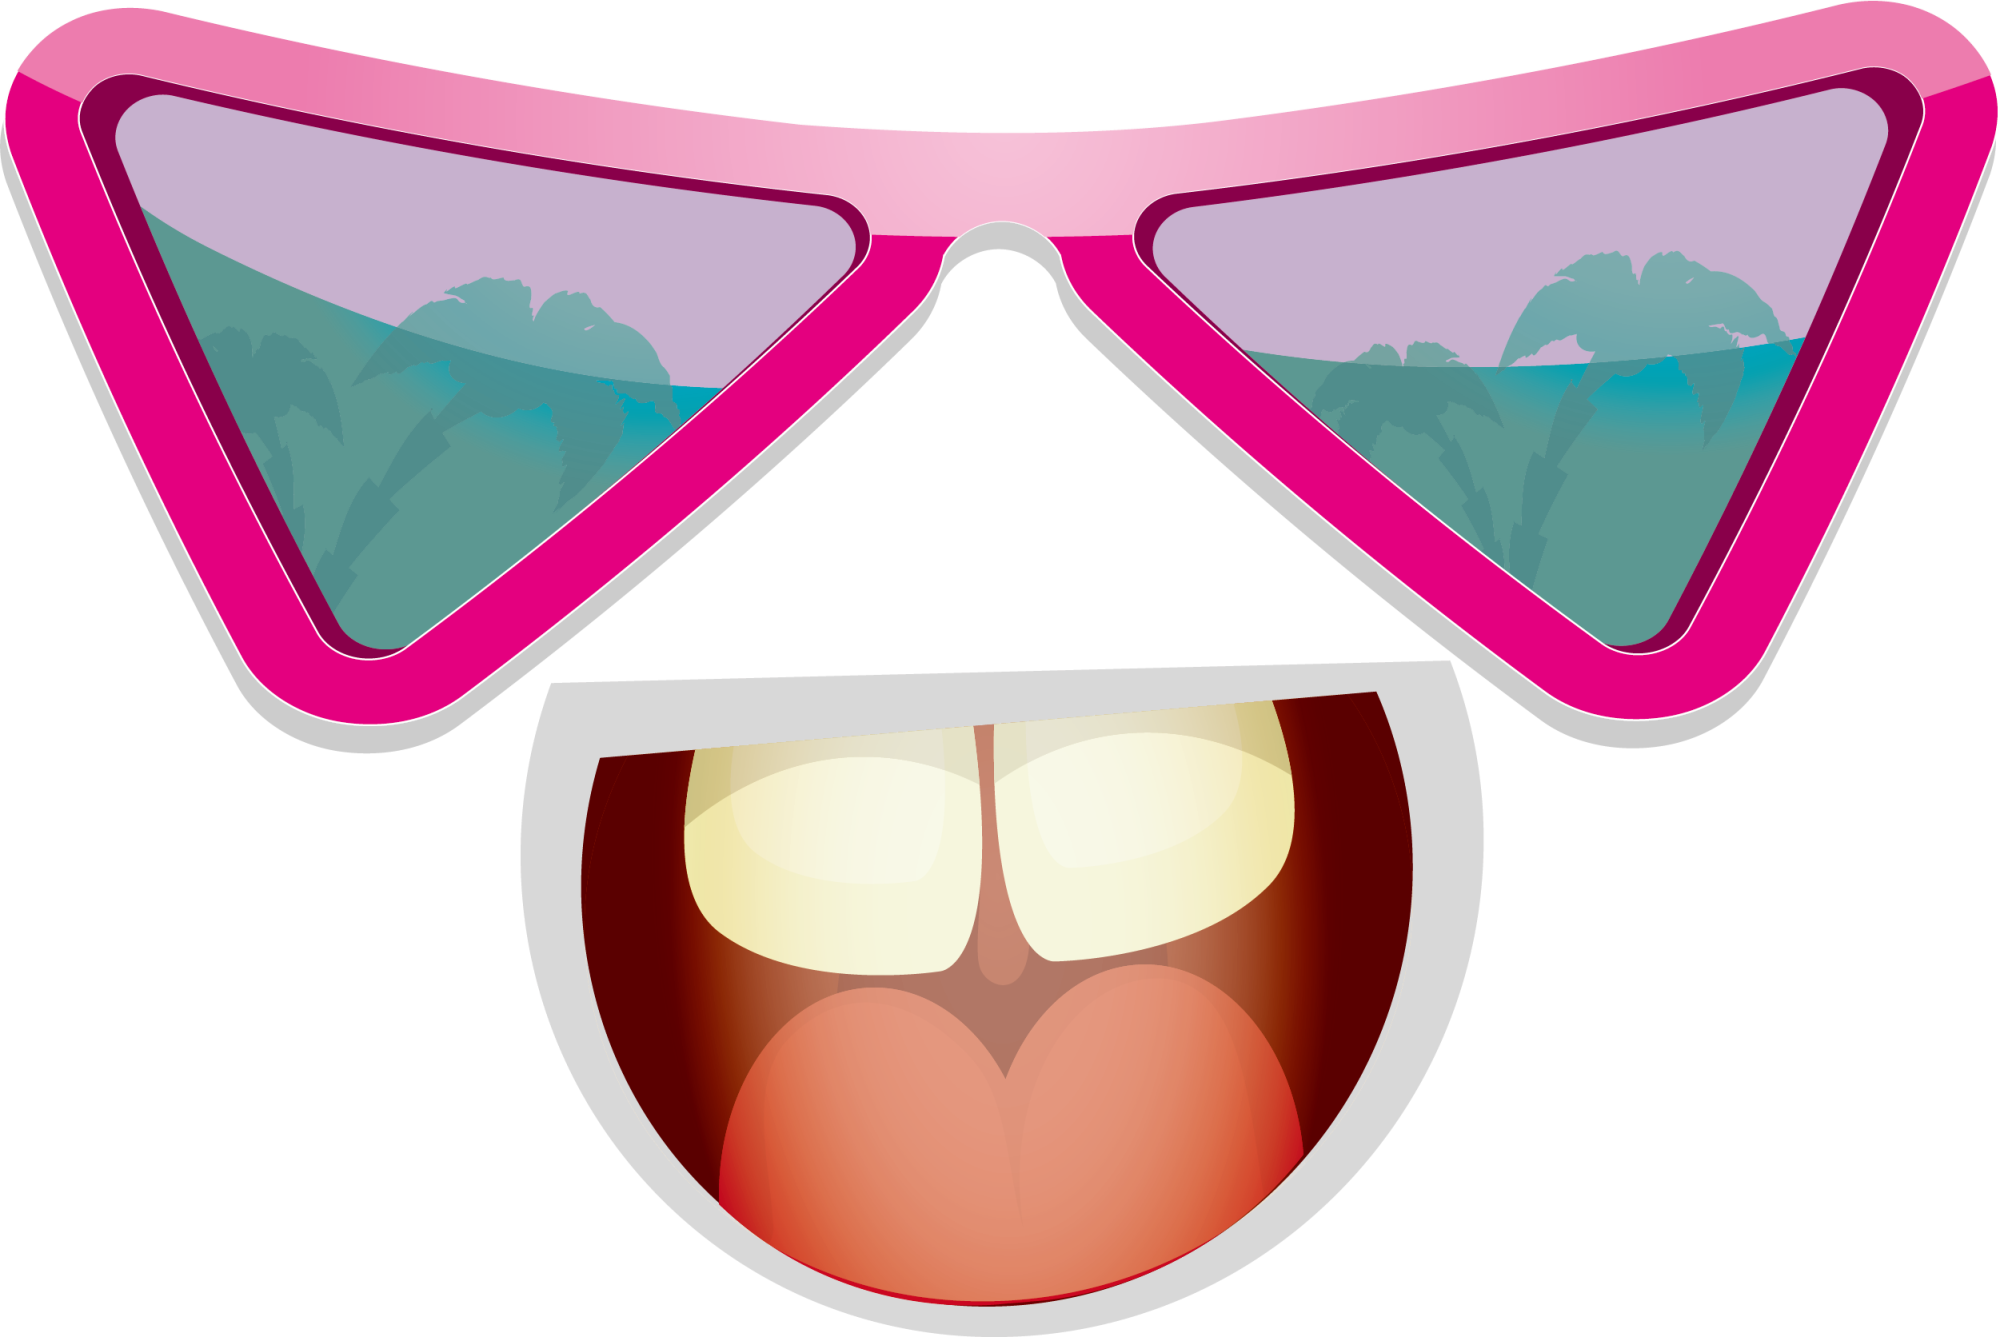 Cartoon drawing illustration faces. Sunglasses clipart pink heart